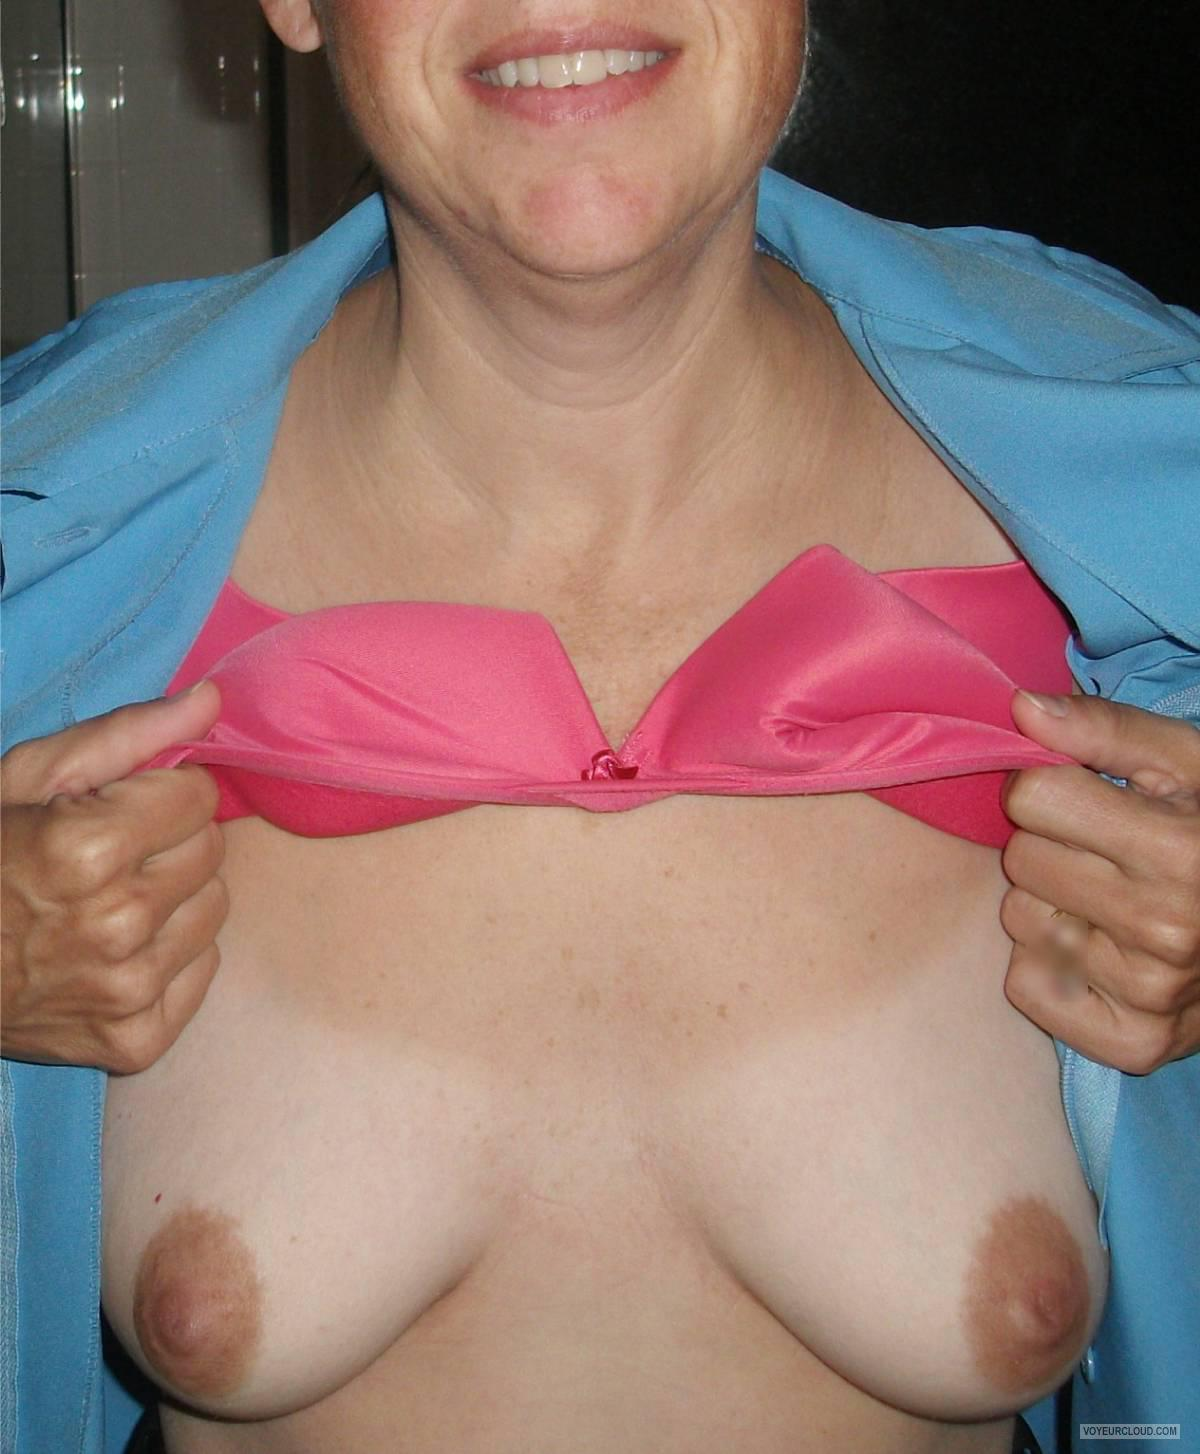 Tit Flash: Wife's Small Tits - CGL from United States